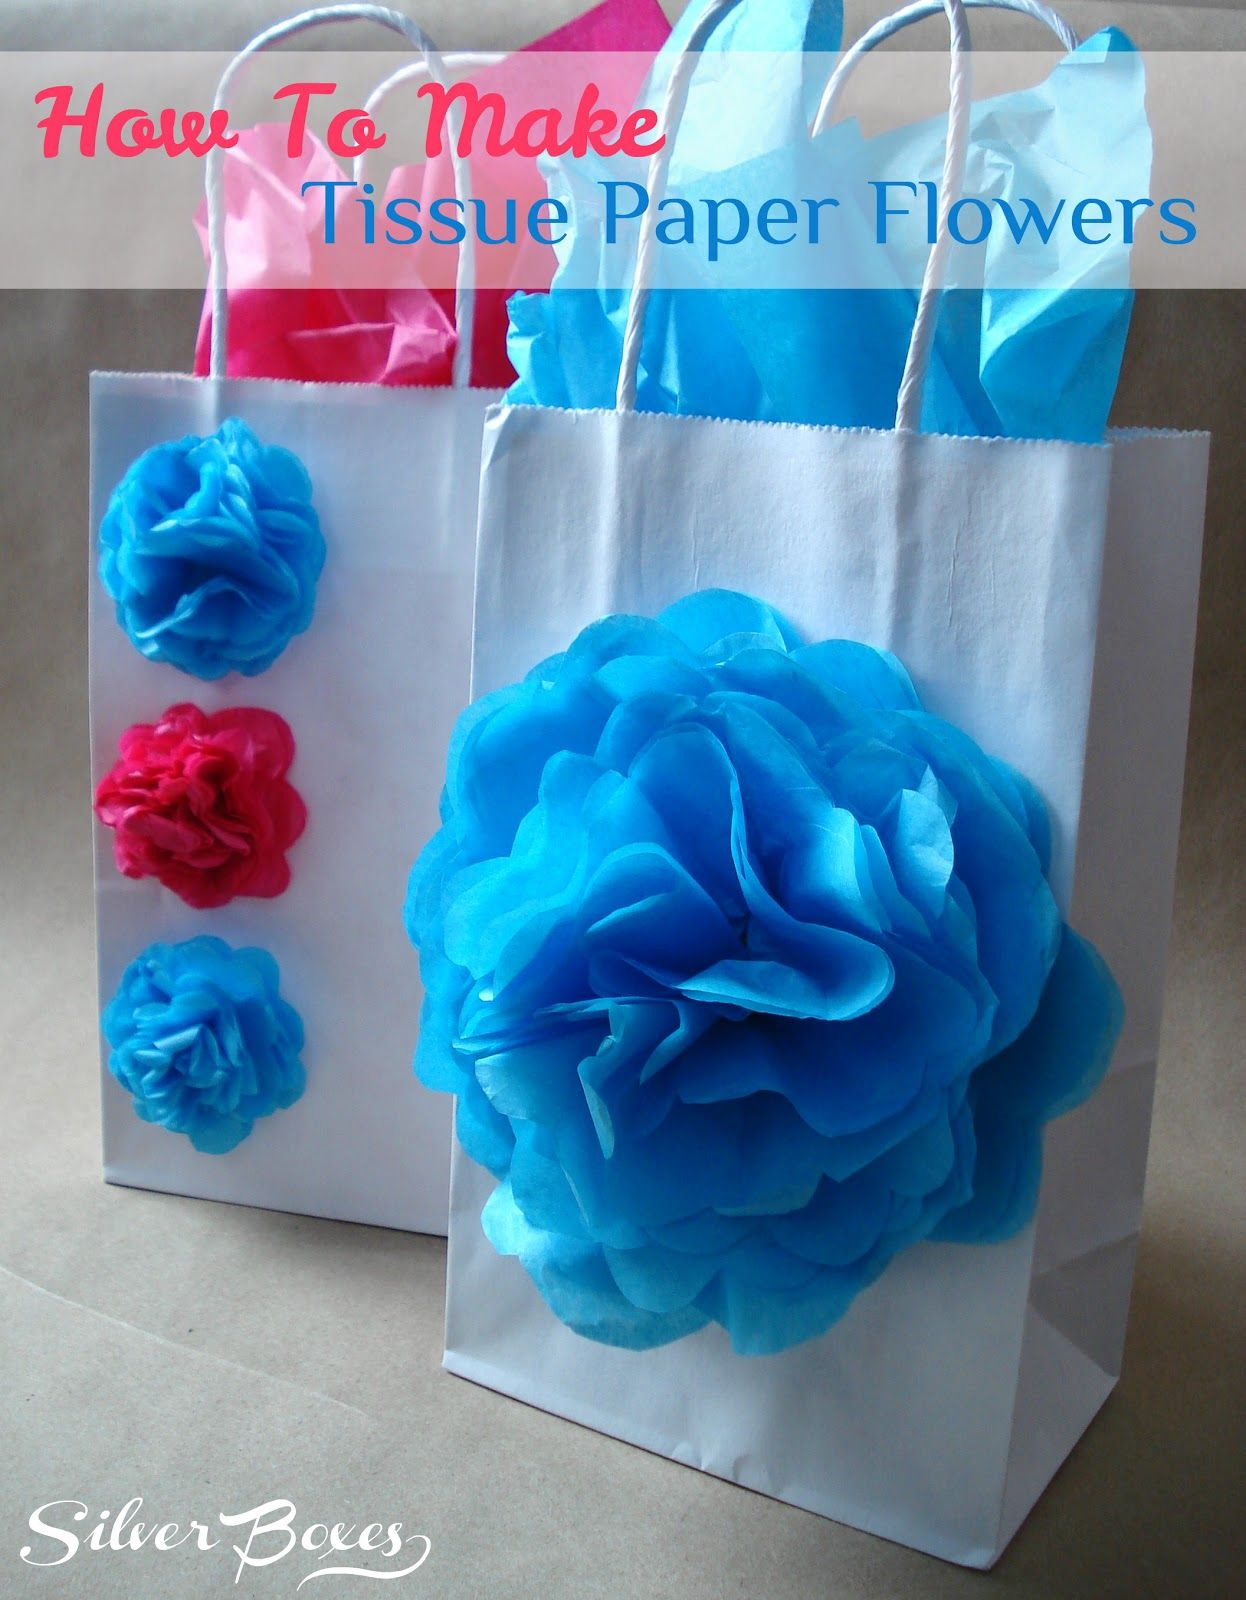 Silver Boxes How To Make Tissue Paper Flowers Diy Pinterest